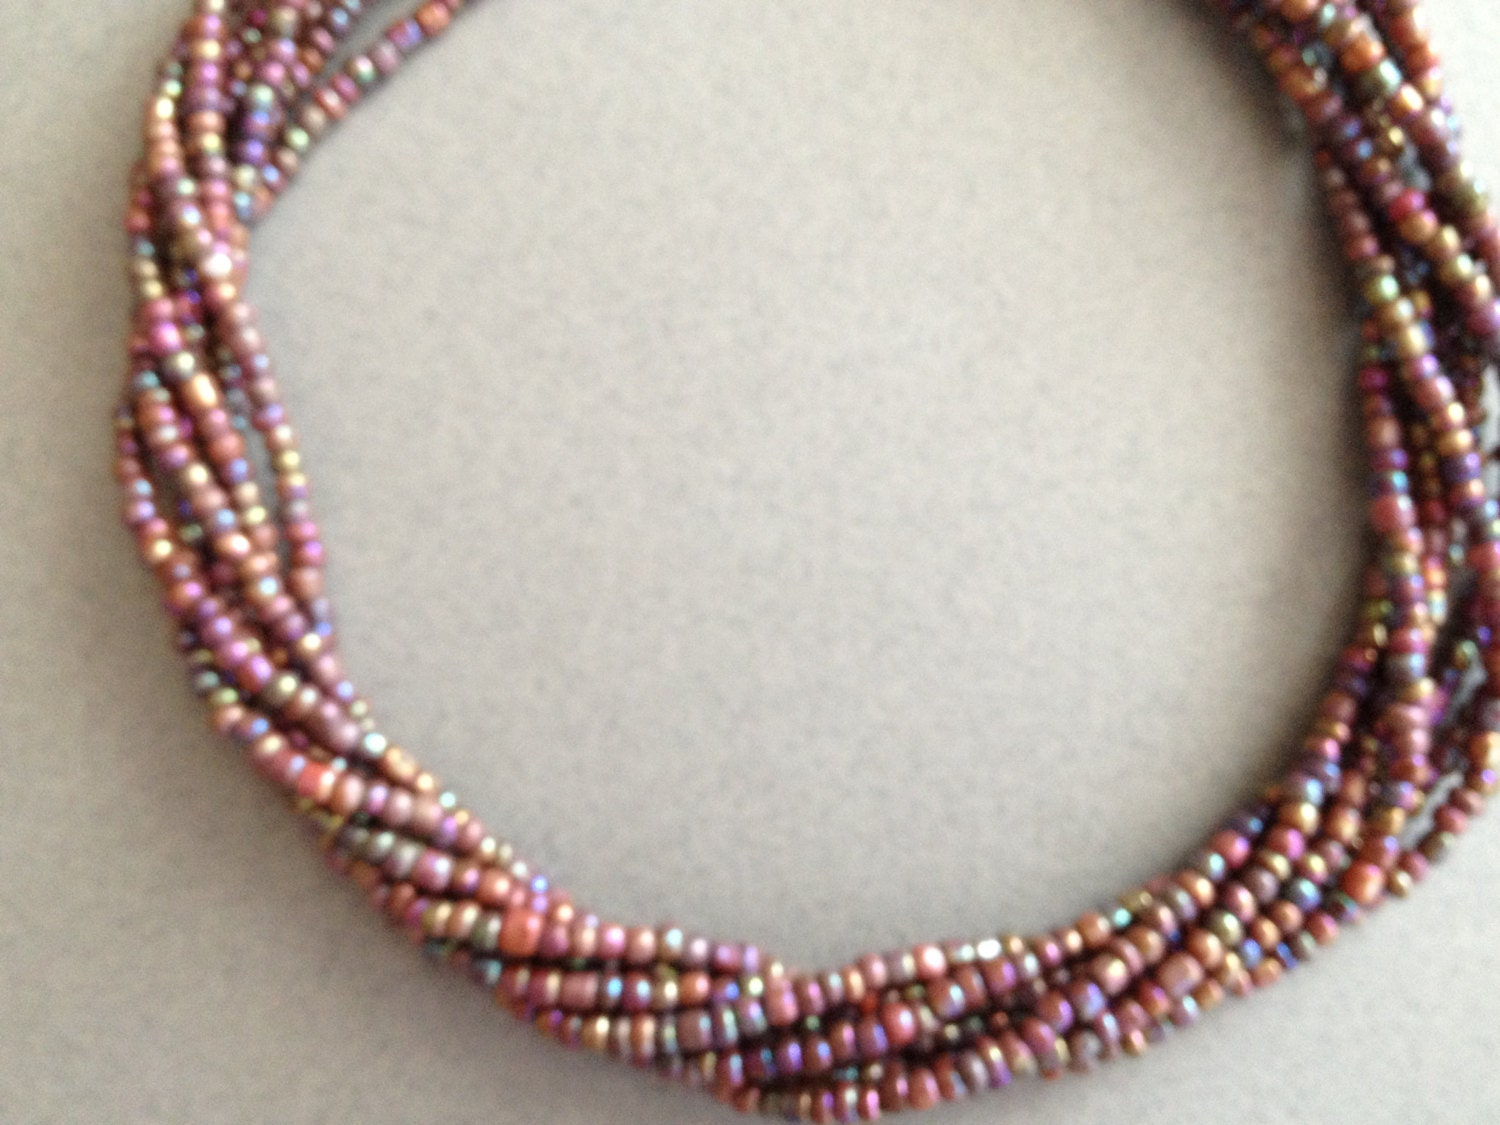 7 Strand Seed Bead Necklace - Copper Brown seed bead necklace